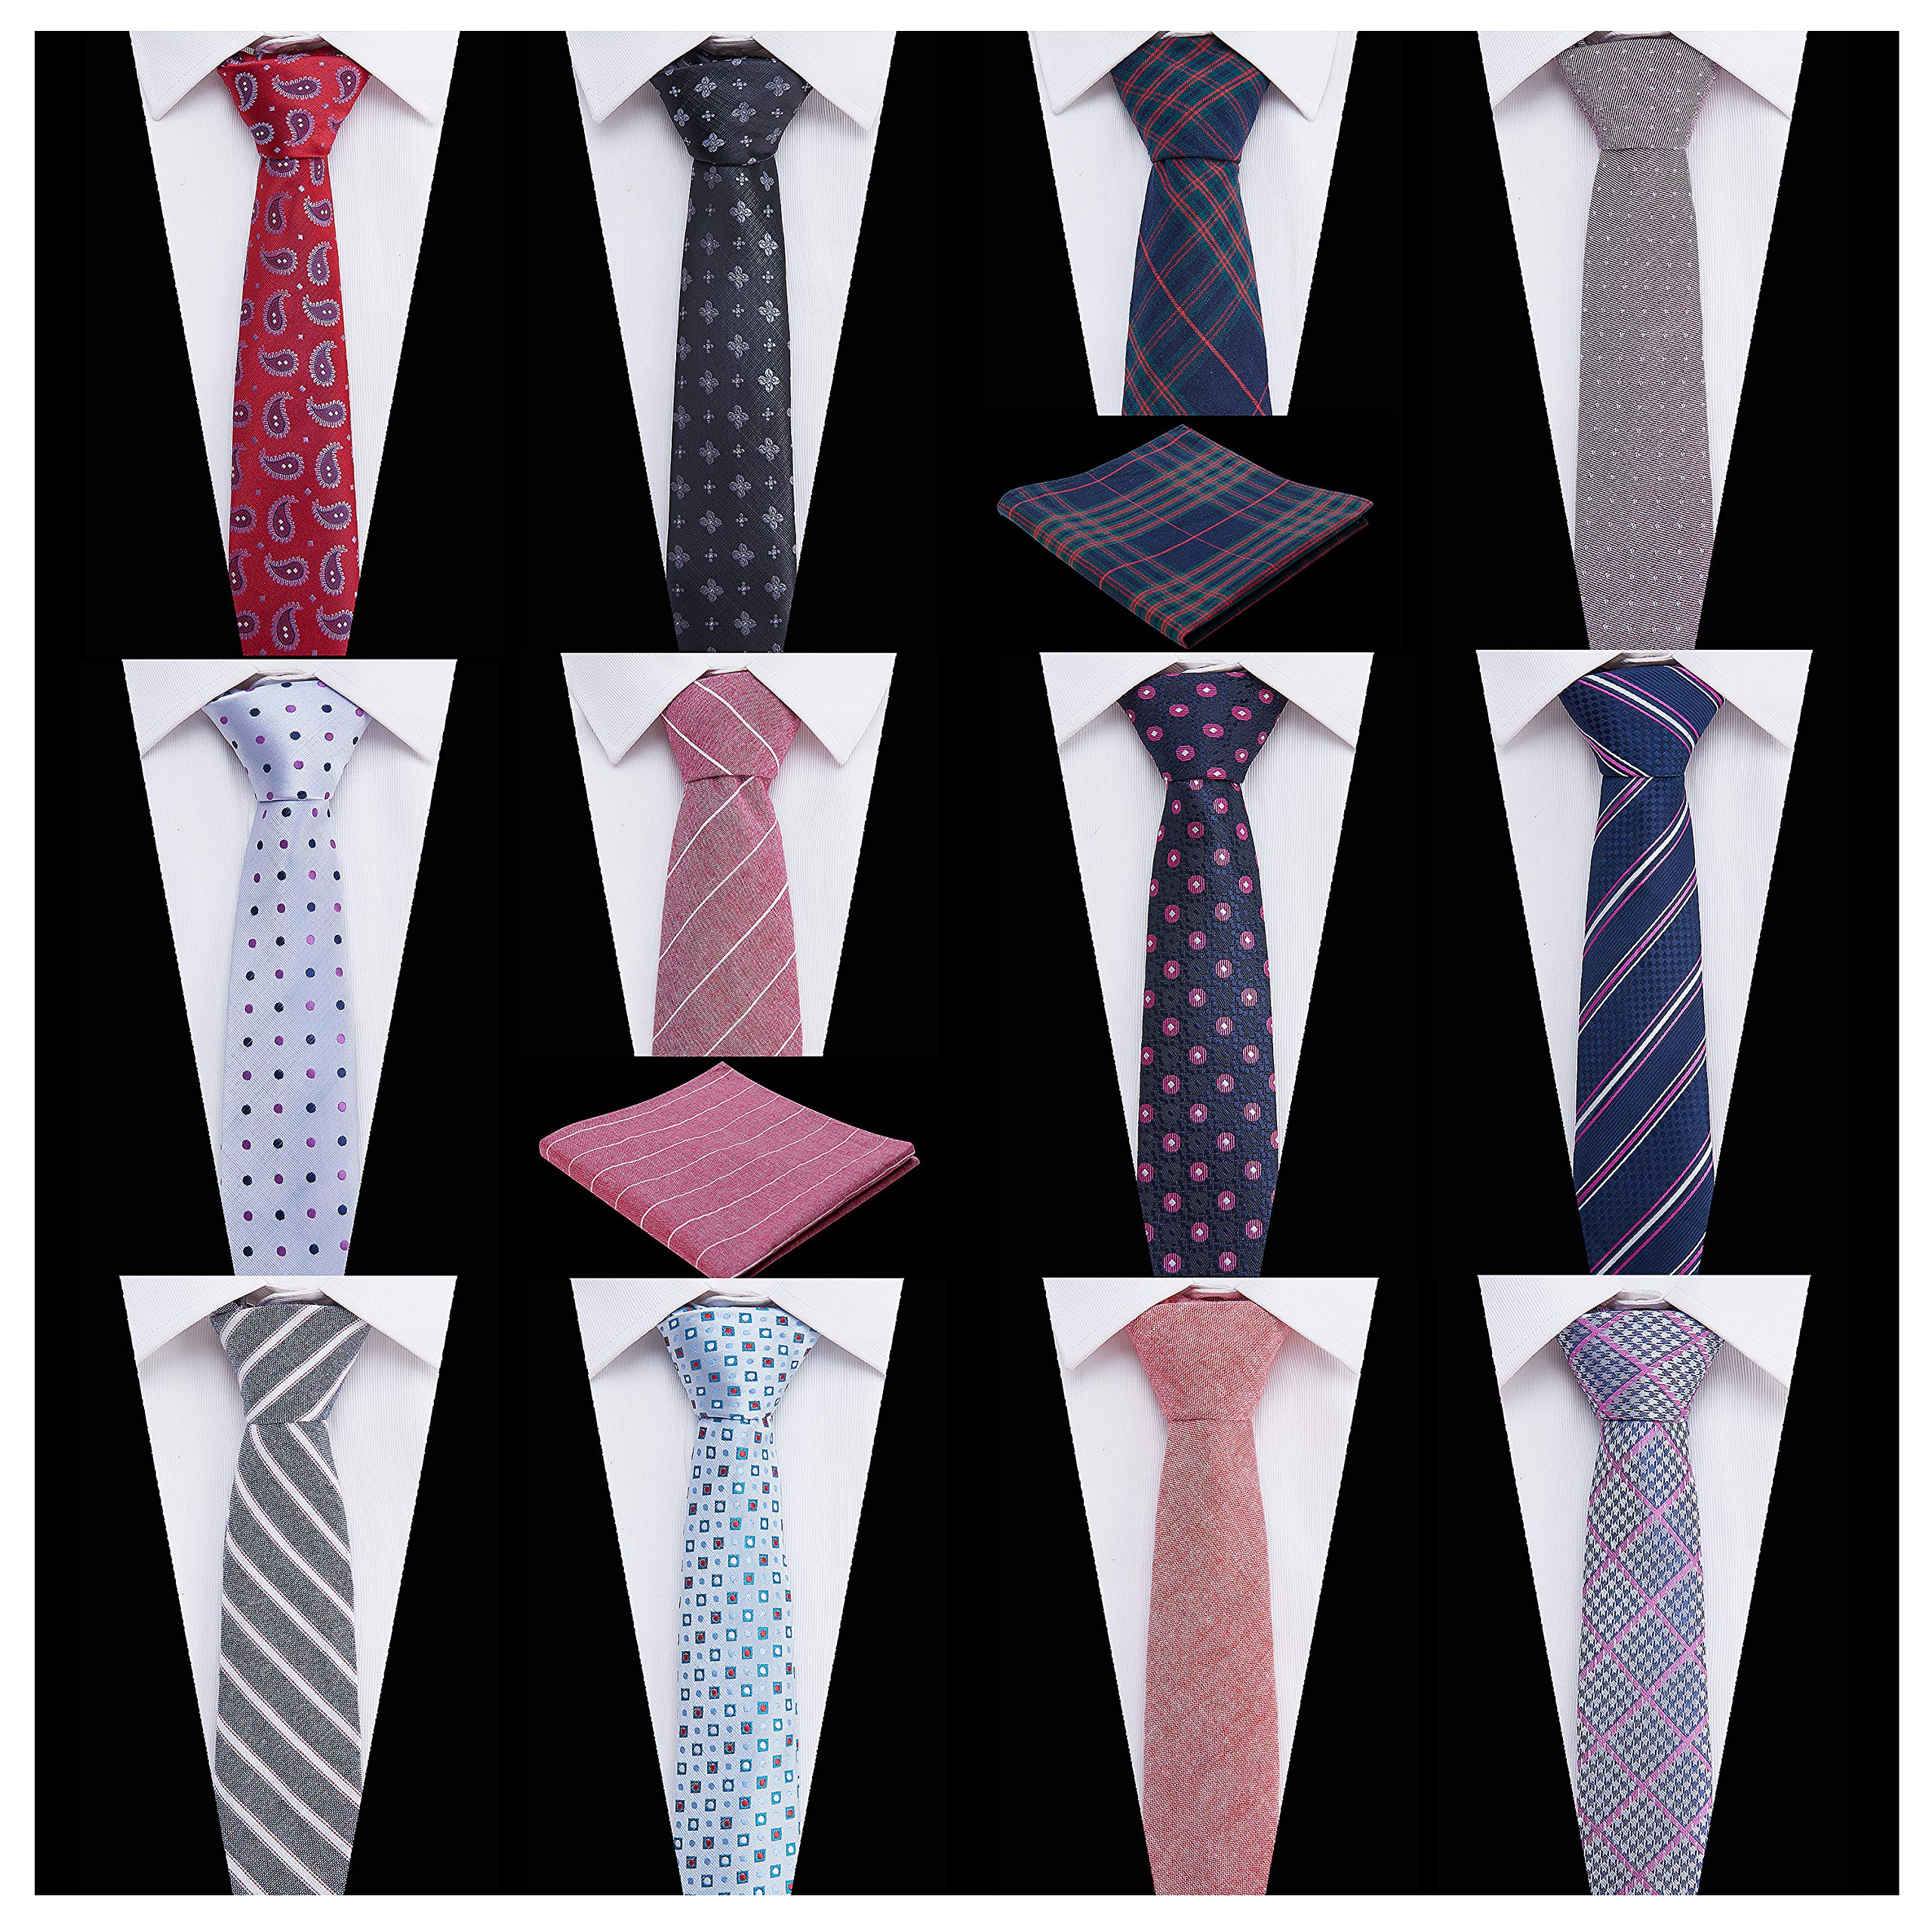 Men's Ties,Tsheoul Noted Lot 12 PCS Classic Cotton Plaid+Printed Floral+Pure Color+Striped Skinny Necktie & 2 PCS Pocket Square - Multiple Sets (2.5''+12 pcs+Square-03)